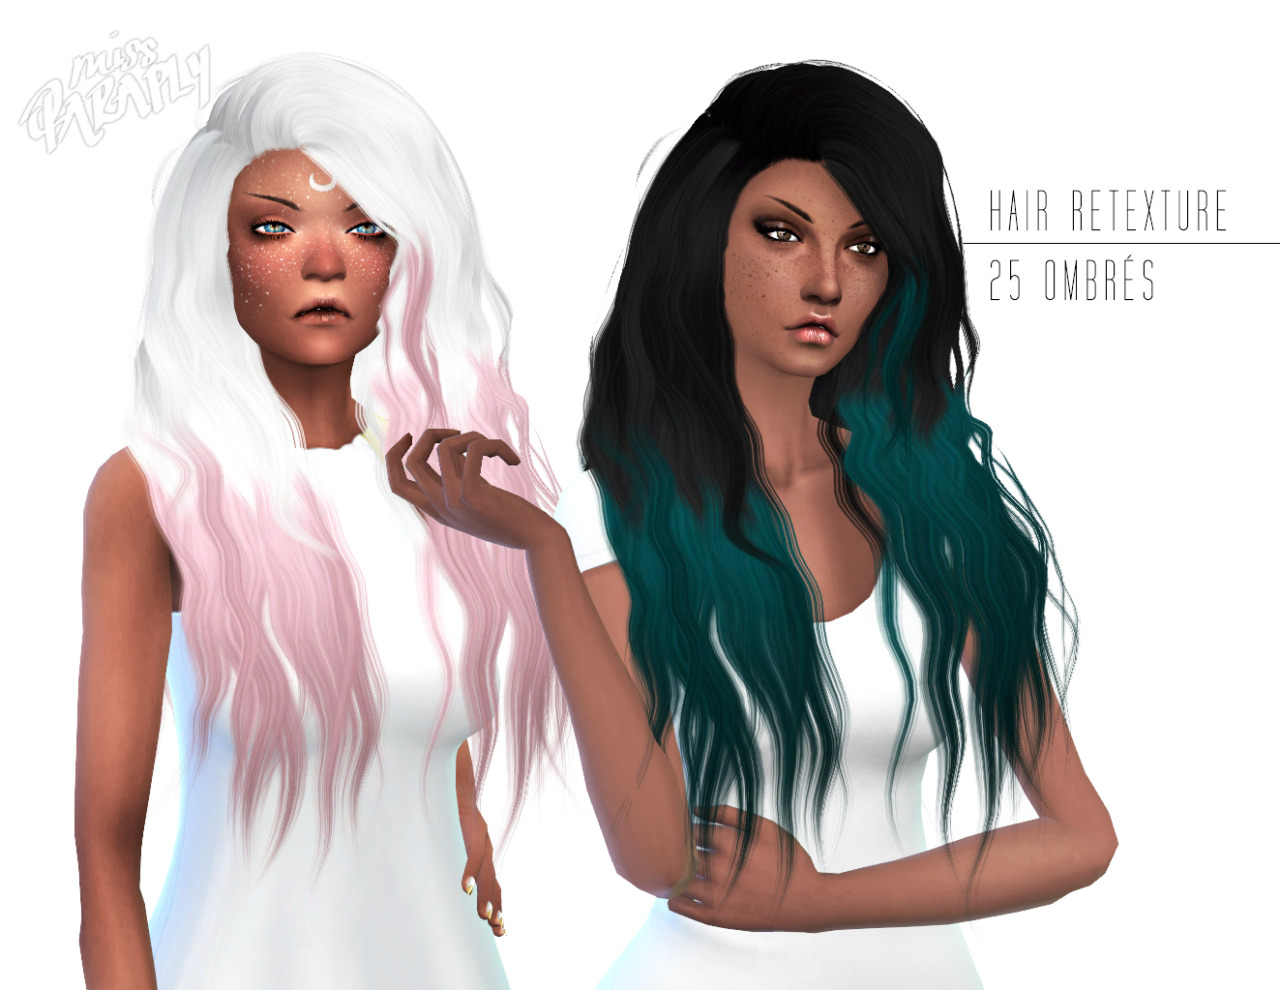 Hairstyles Gifts : ... Sleepwalking hairstyle retextured - 5000+ Followers Gift: part 2